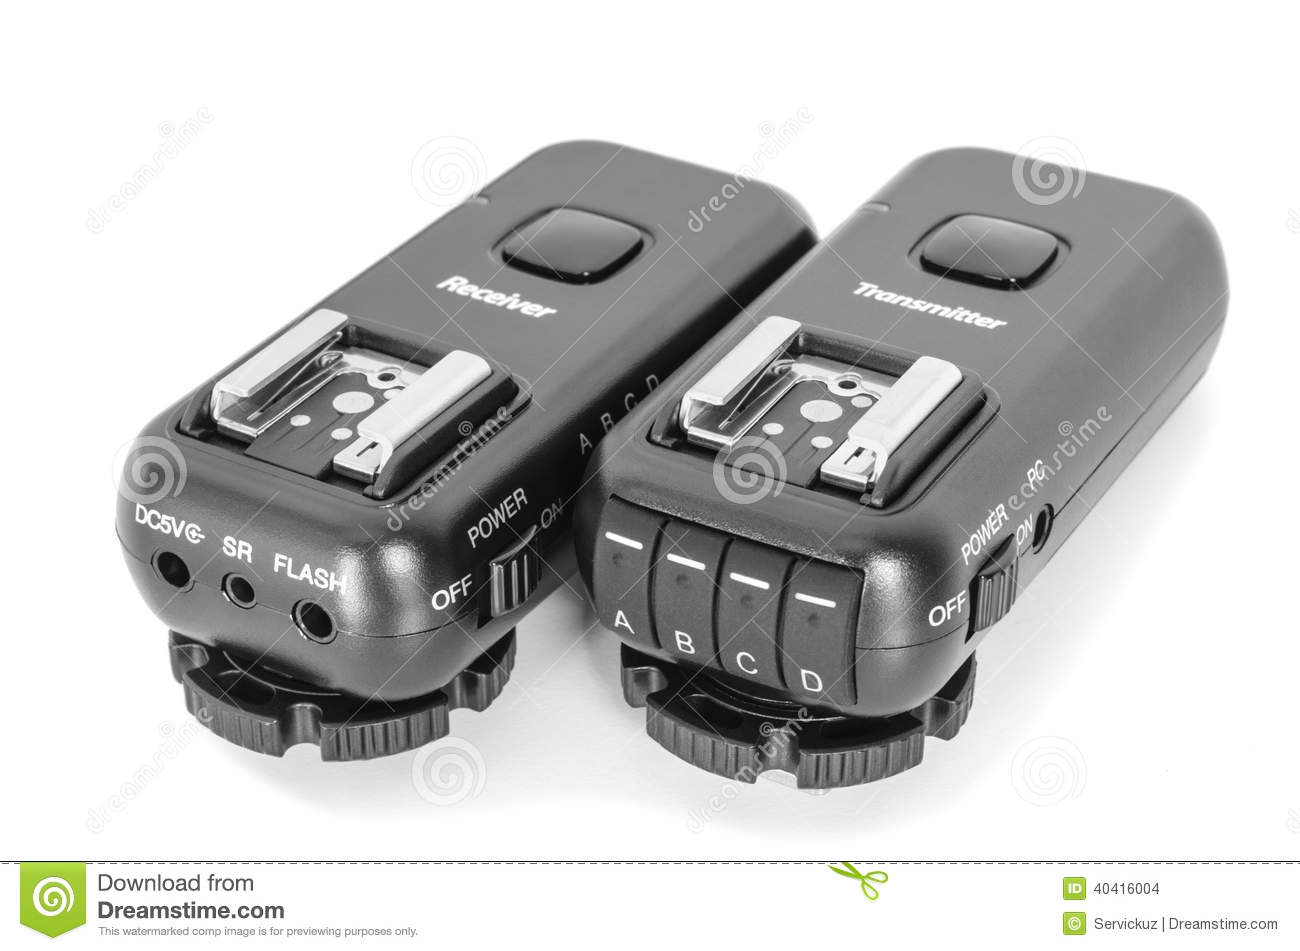 Wireless multichannel radio trigger set